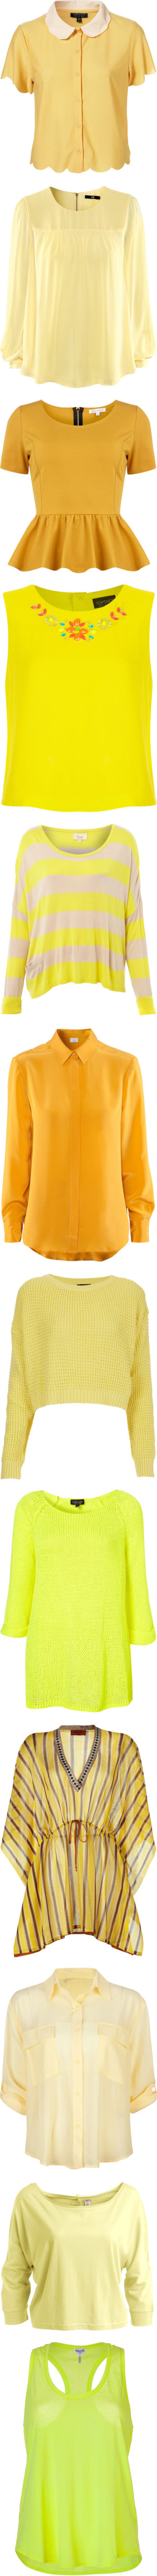 """Yellow tops"" by melodynov3rd ❤ liked on Polyvore"